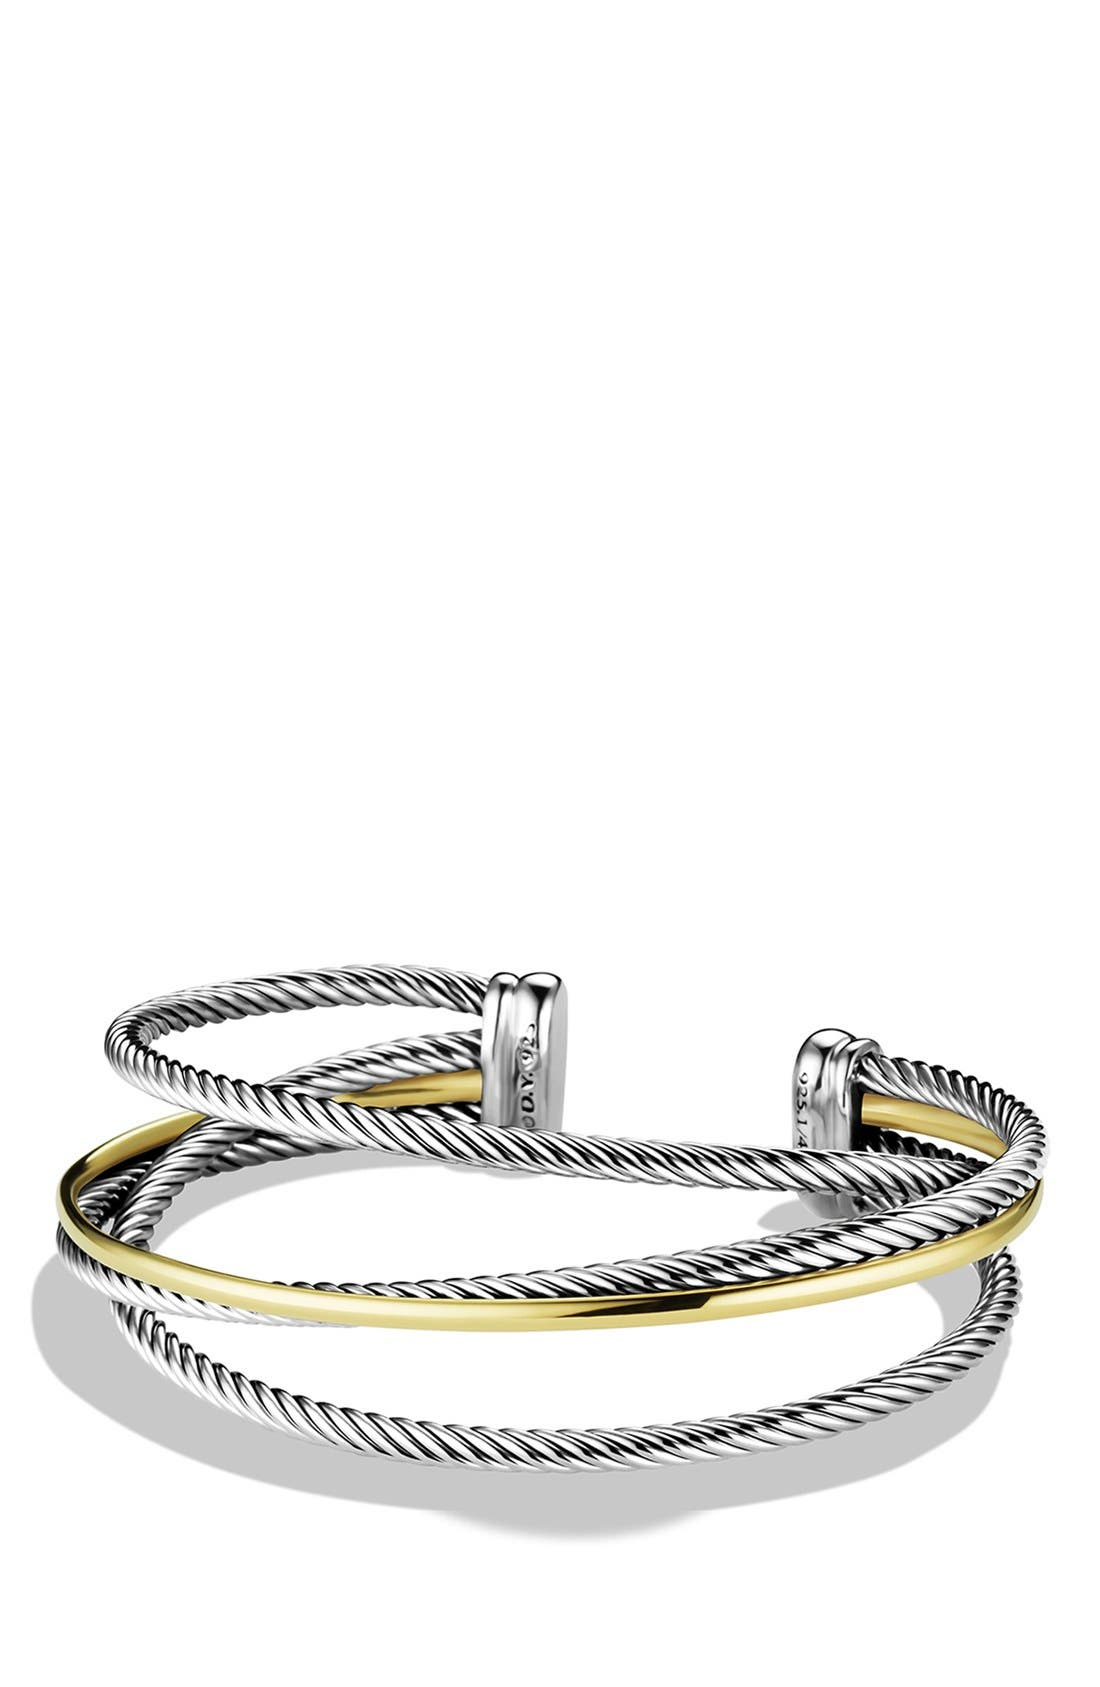 Alternate Image 1 Selected - David Yurman 'Crossover' Three-Row Cuff with Gold